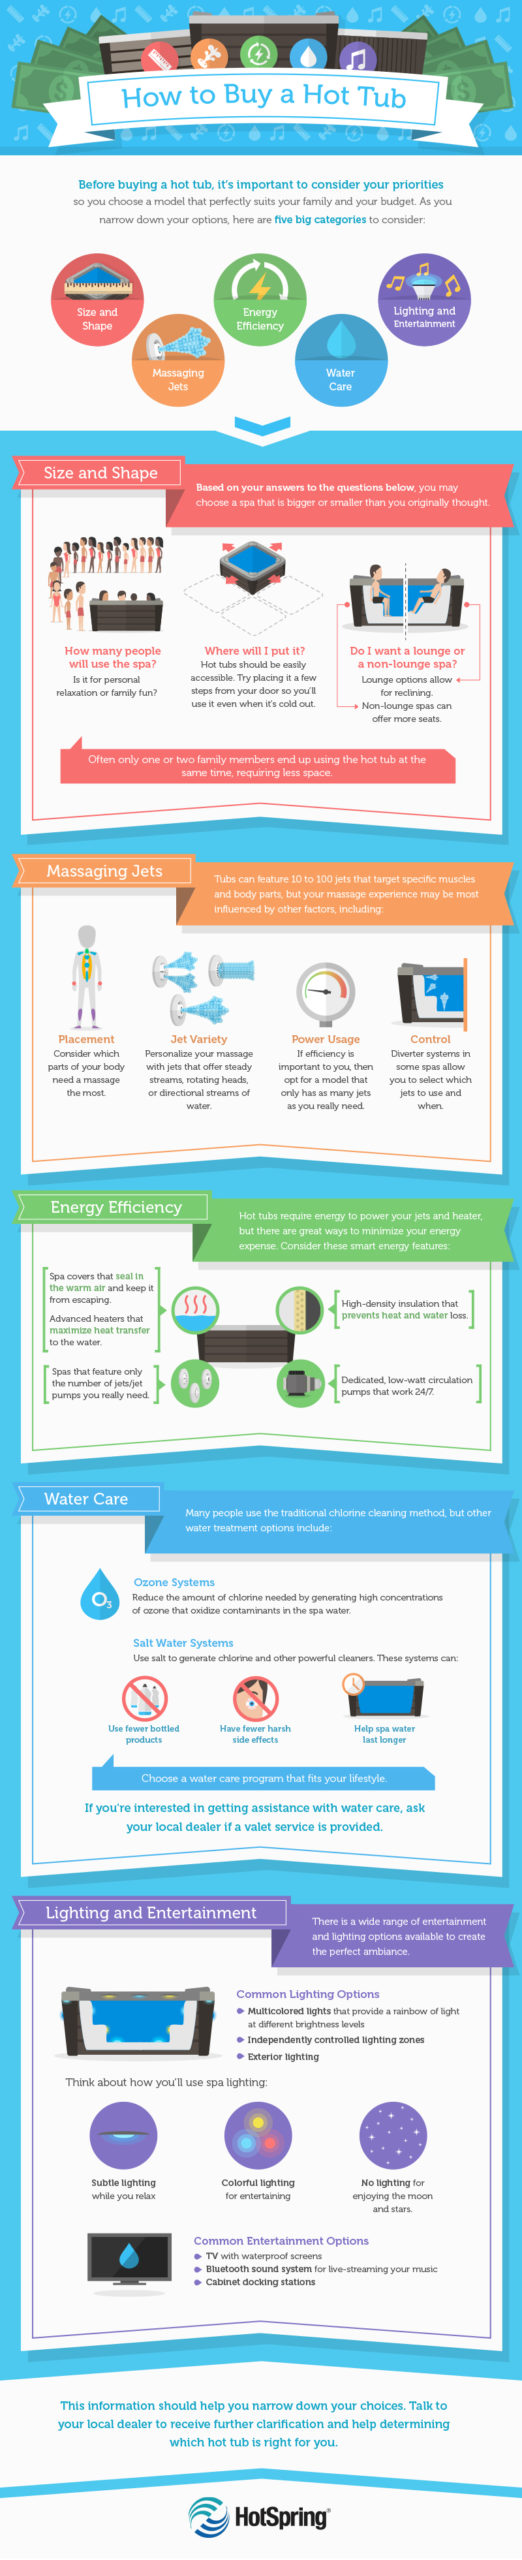 How to Buy a Hot Tub Infographic